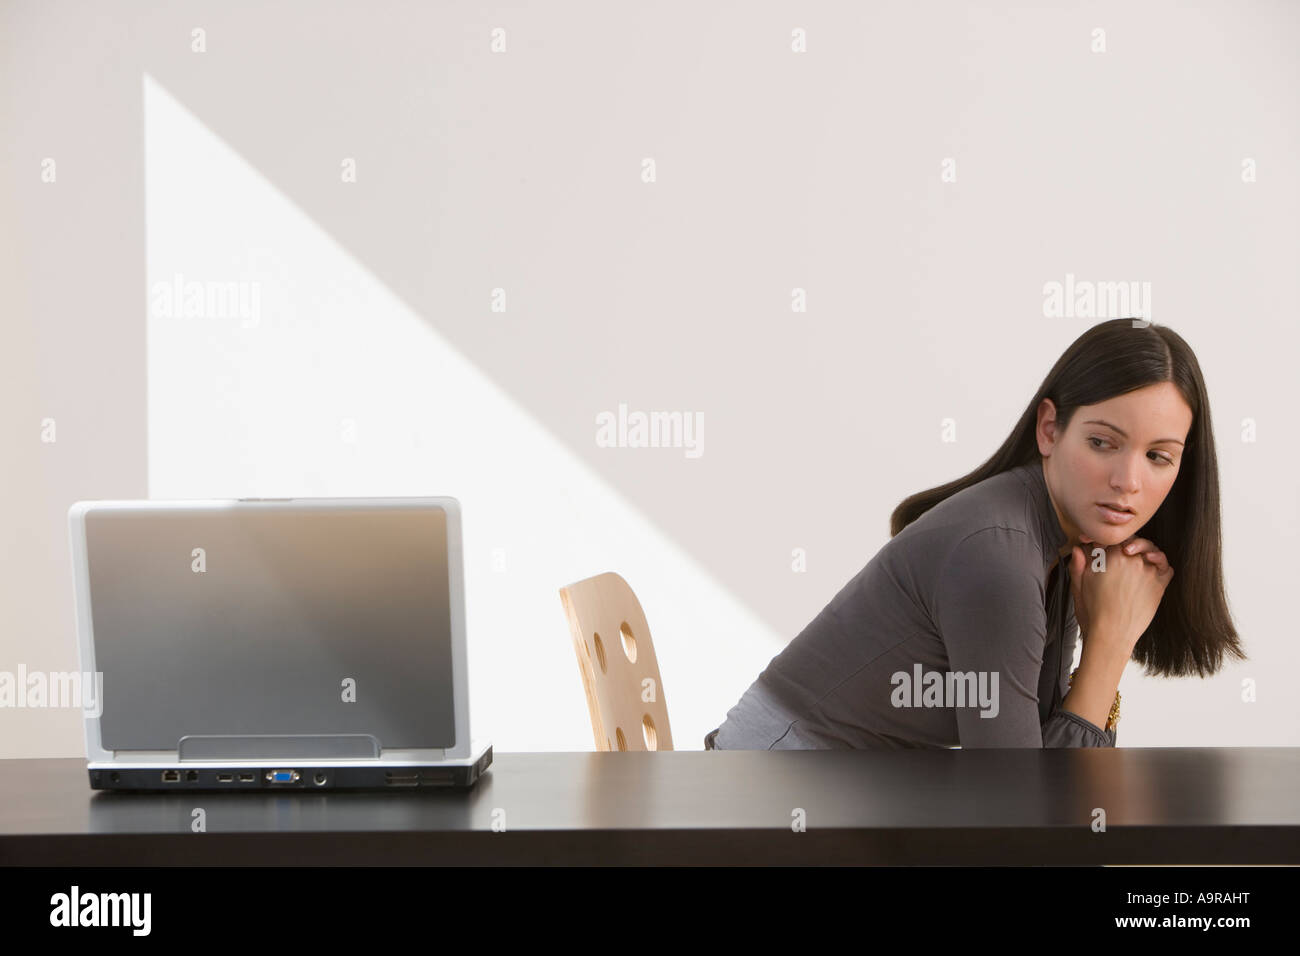 Woman looking over shoulder at laptop - Stock Image